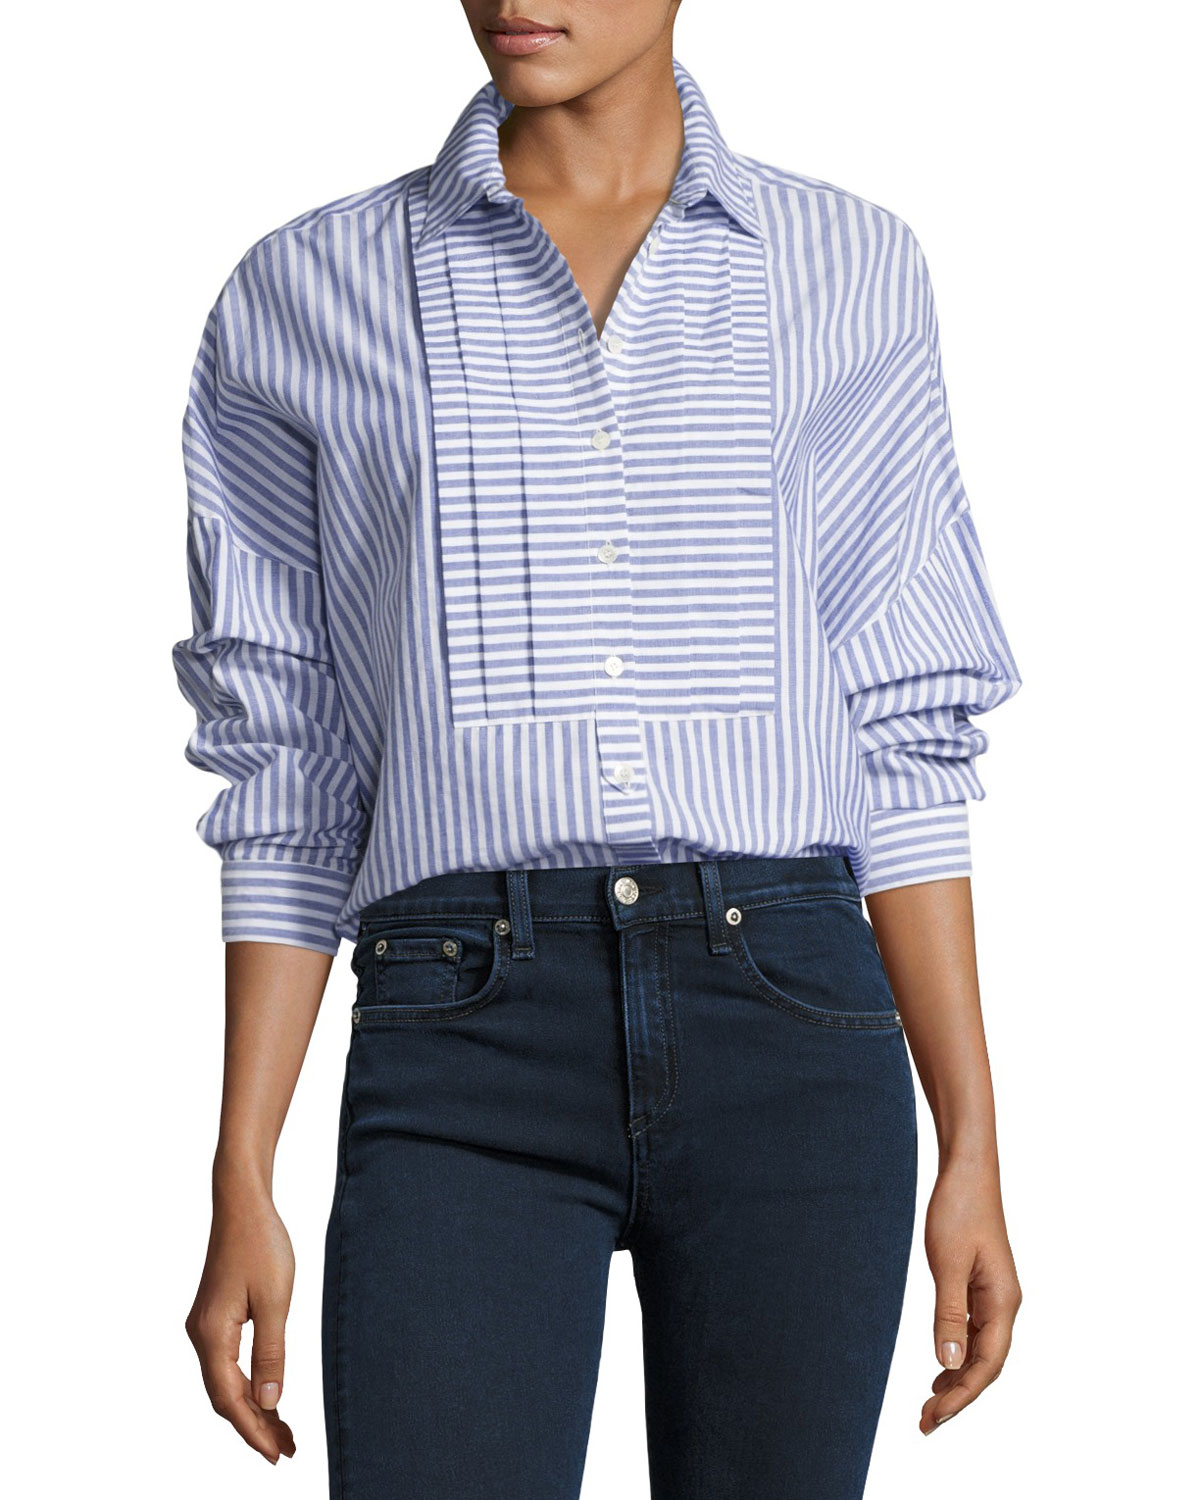 Posy Striped Boyfriend Shirt